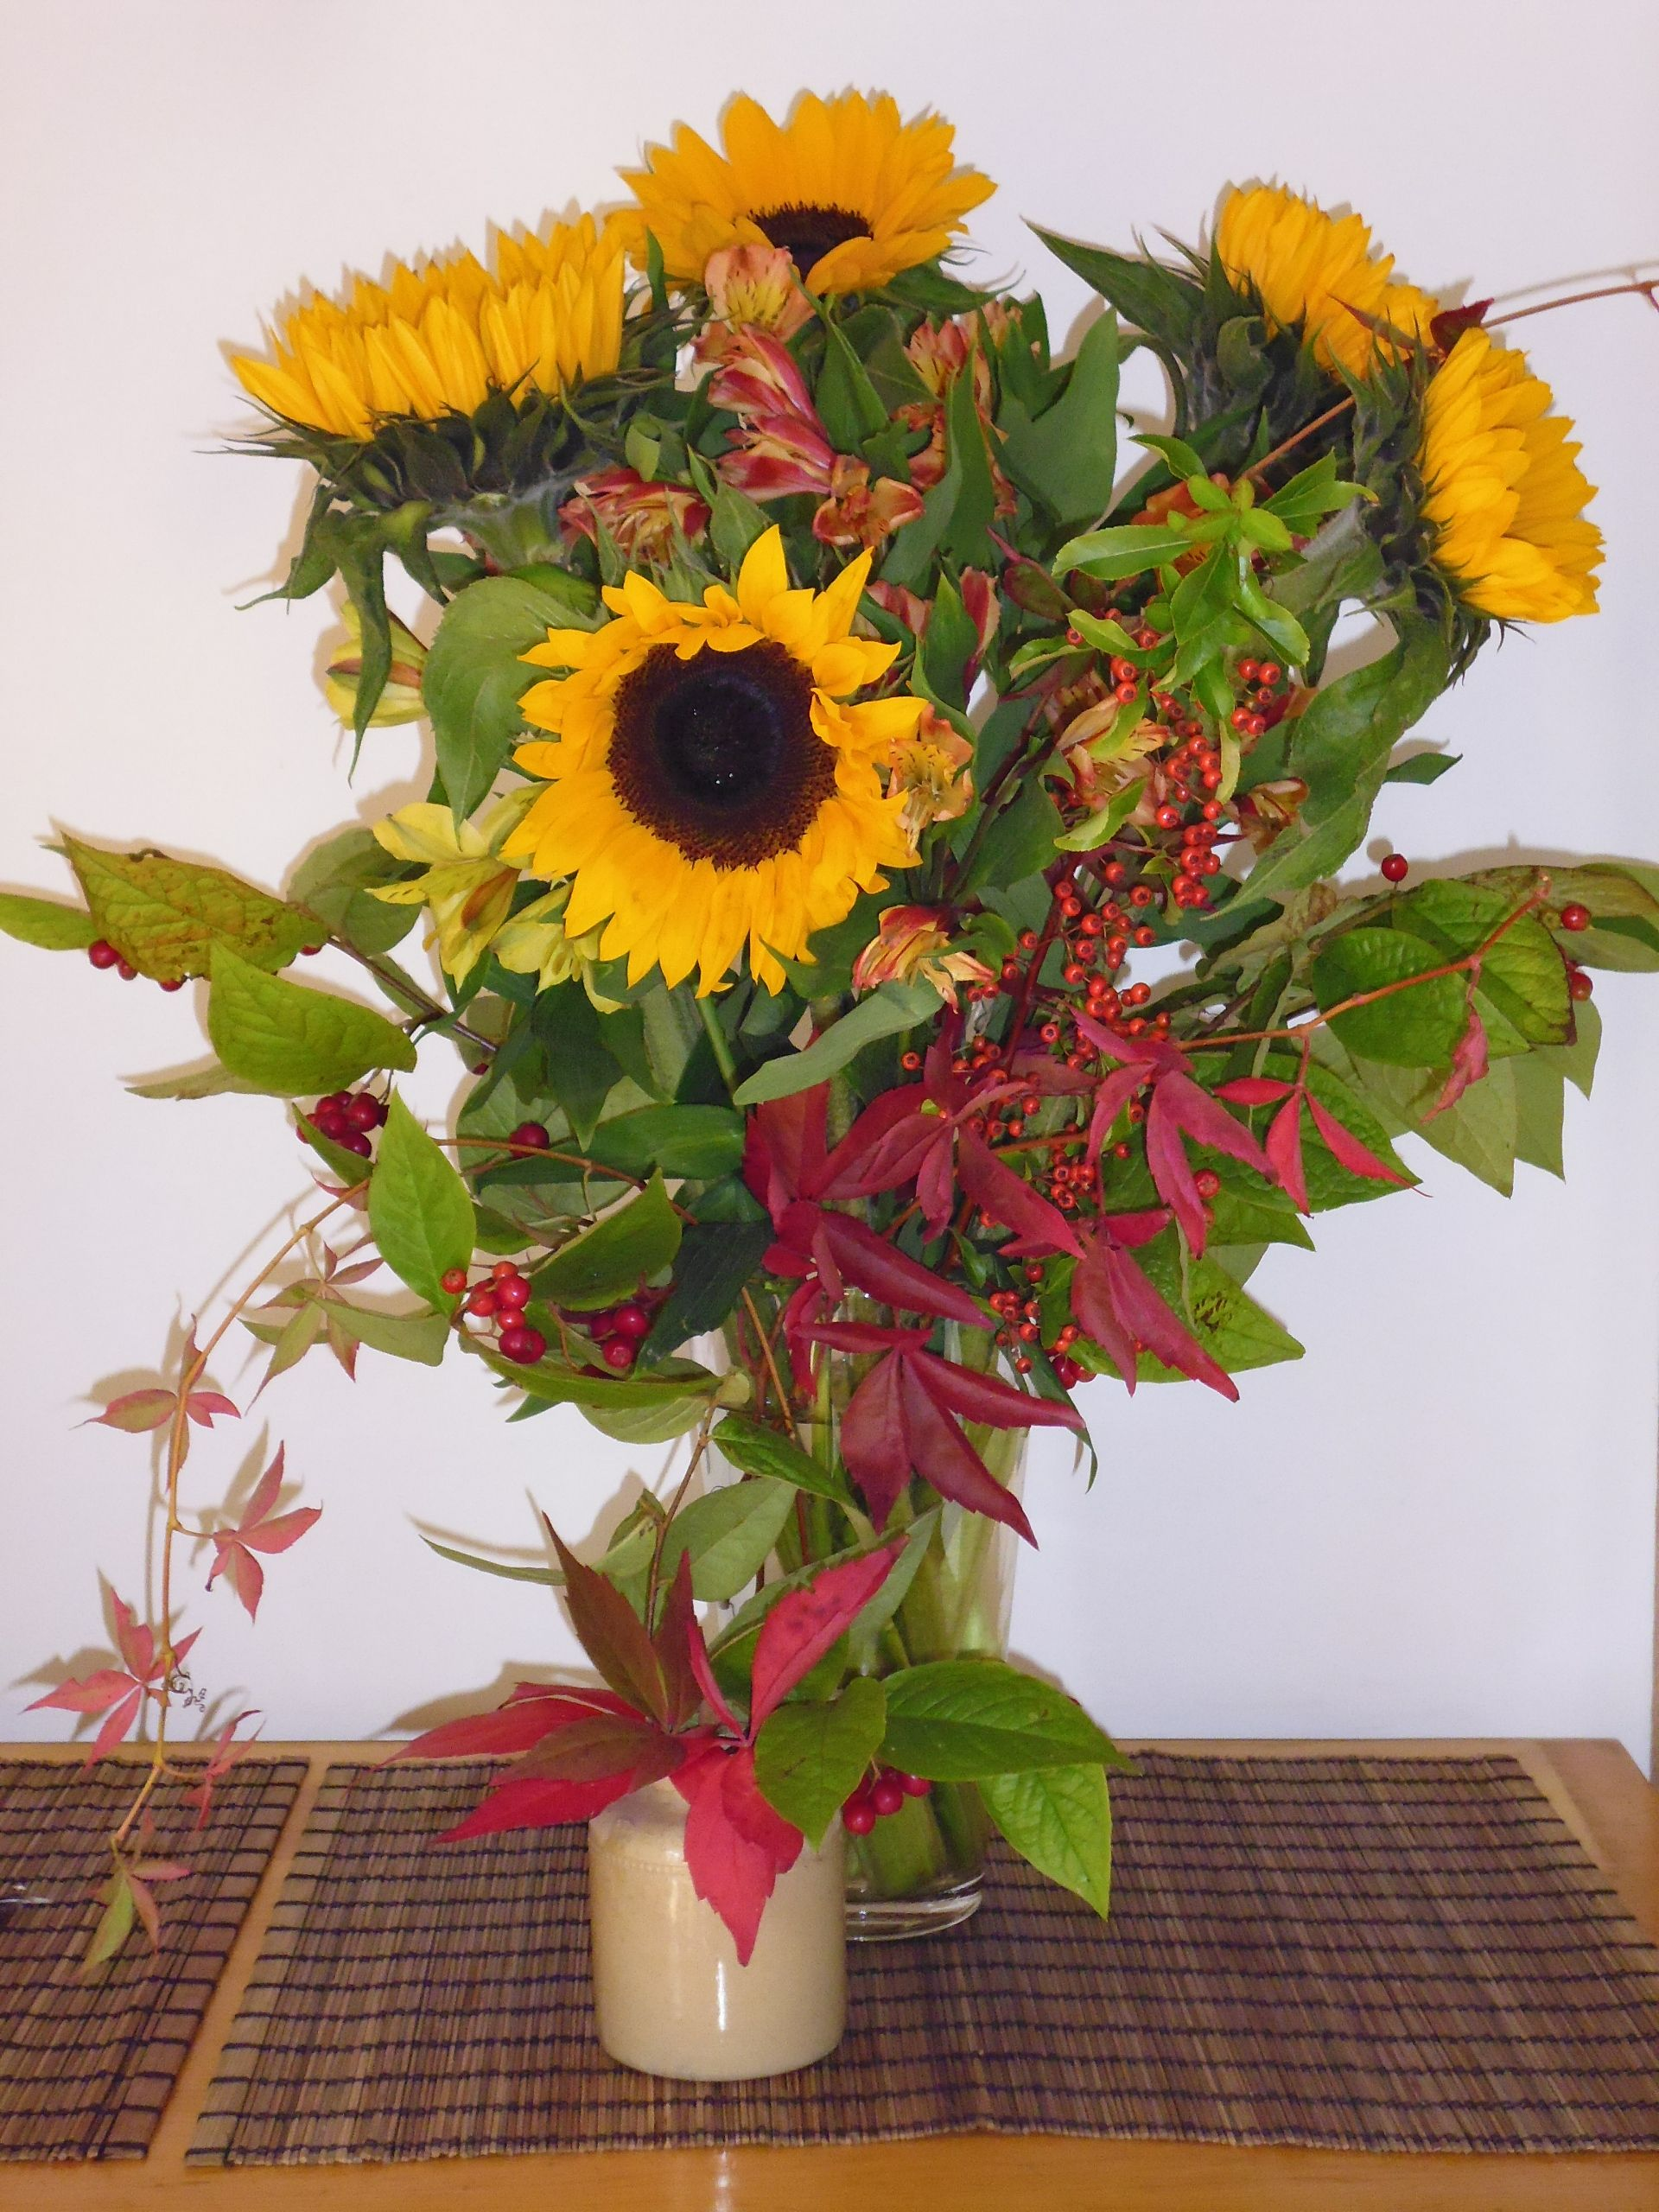 September Sunflowers From Aldi Branches Leaves And 400 x 300